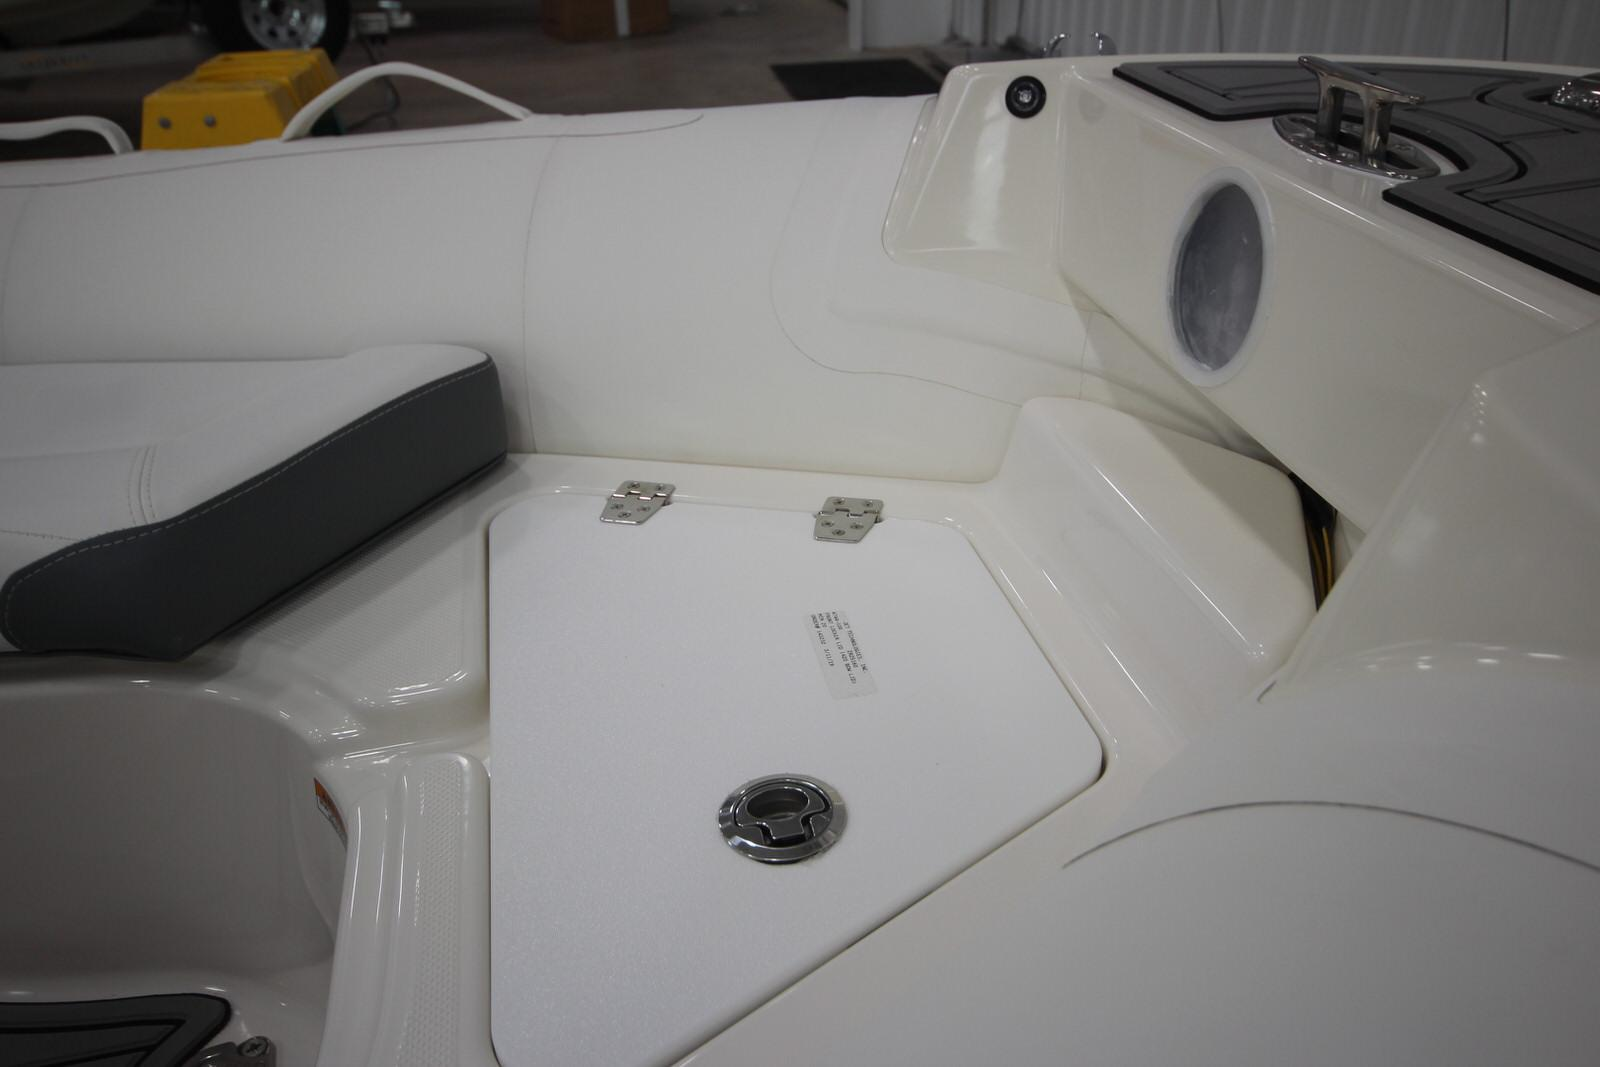 2022 Zodiac Yachtline 440 Deluxe NEO GL Edition 60hp On Order, Image 28